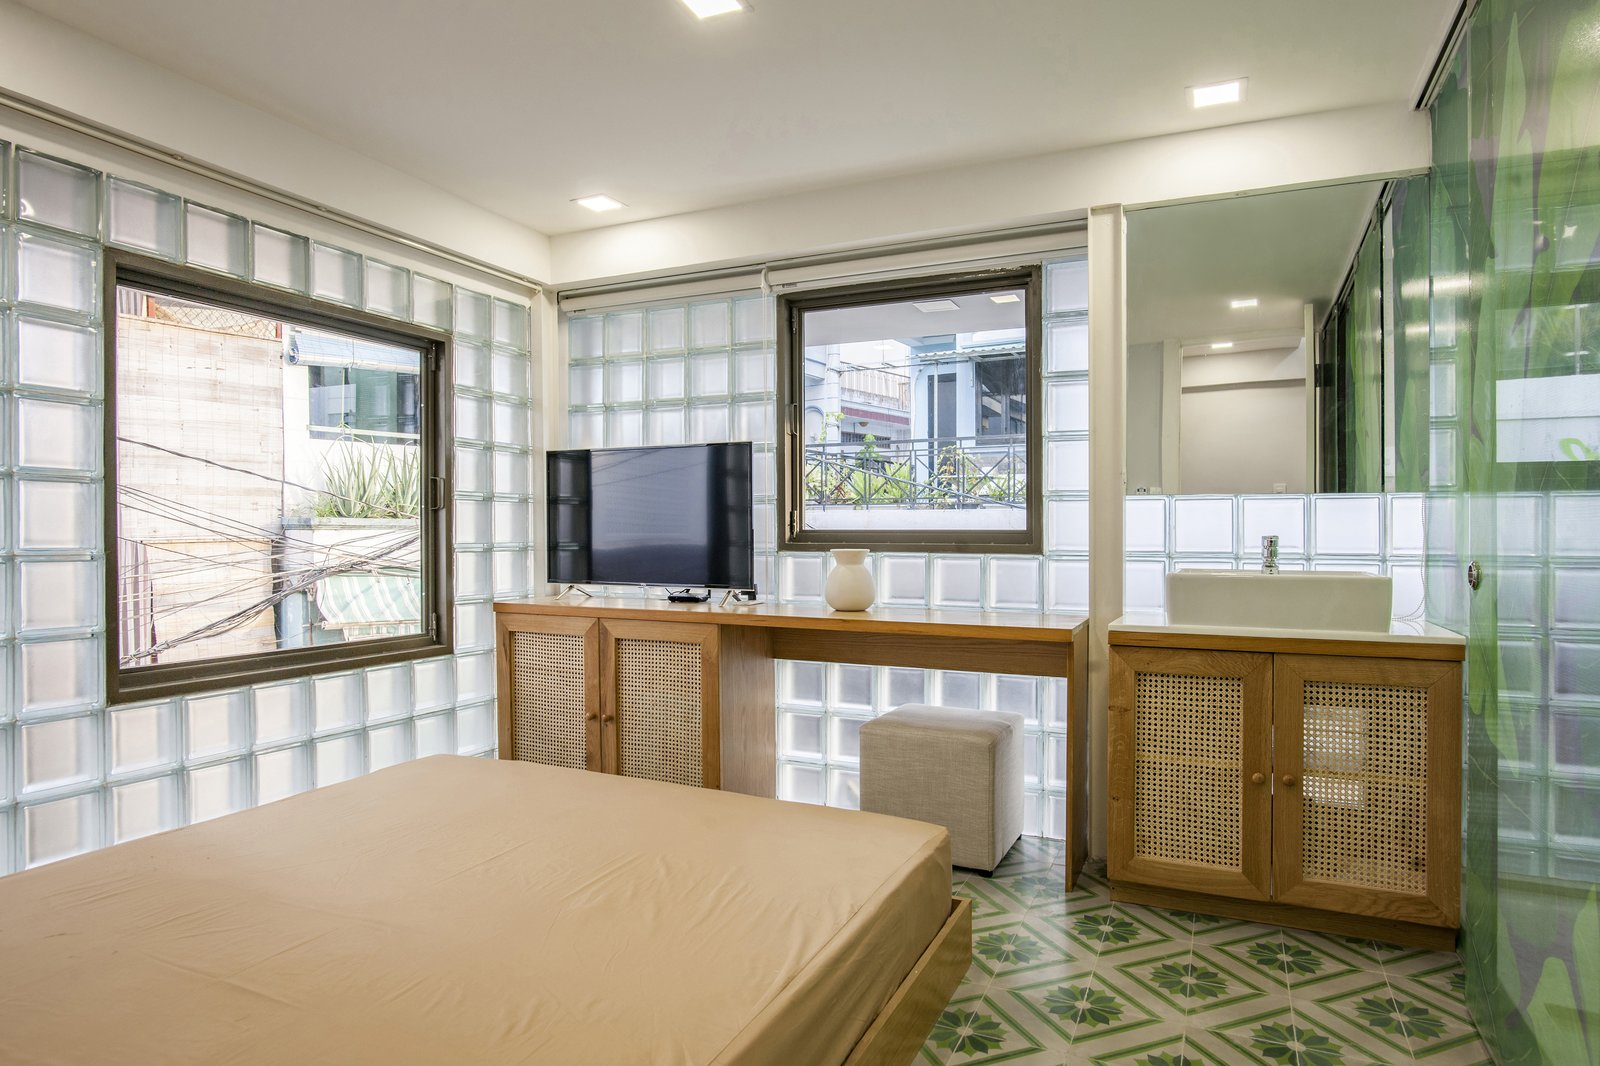 Bedroom, Bed, Recessed Lighting, Porcelain Tile Floor, and Ceramic Tile Floor The guest bedroom vanity showcases natural wood and bamboo panels; the flooring is cement tile.  Photo 7 of 12 in This Vietnamese Micro Home Is as Practical as It Is Radiant